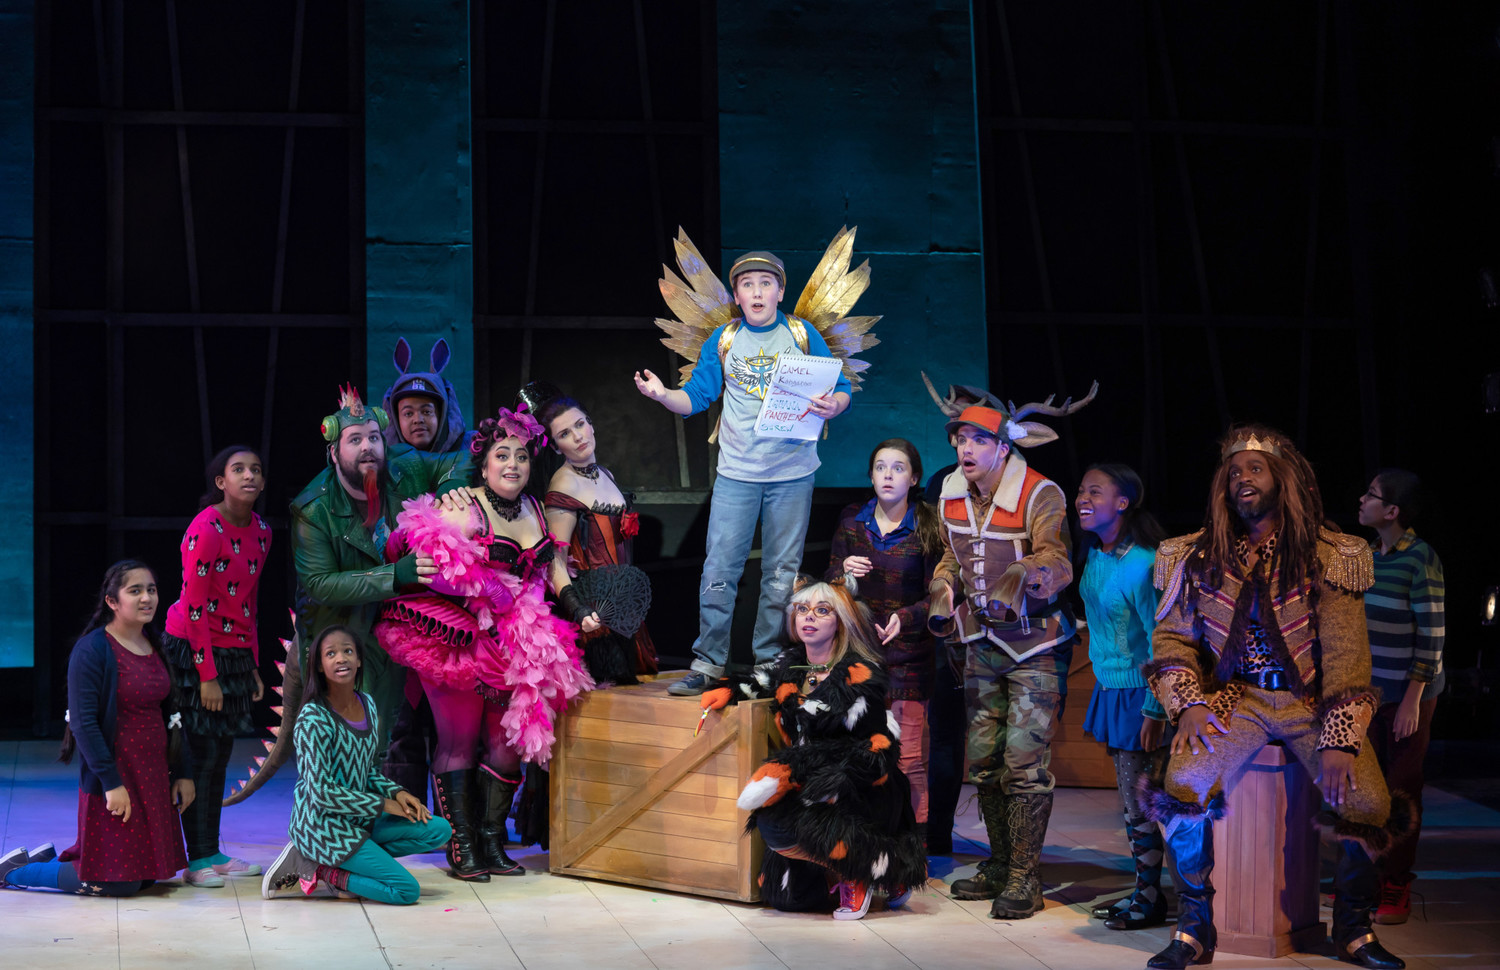 BWW Review: THE LION, THE UNICORN, AND ME at The Kennedy Center